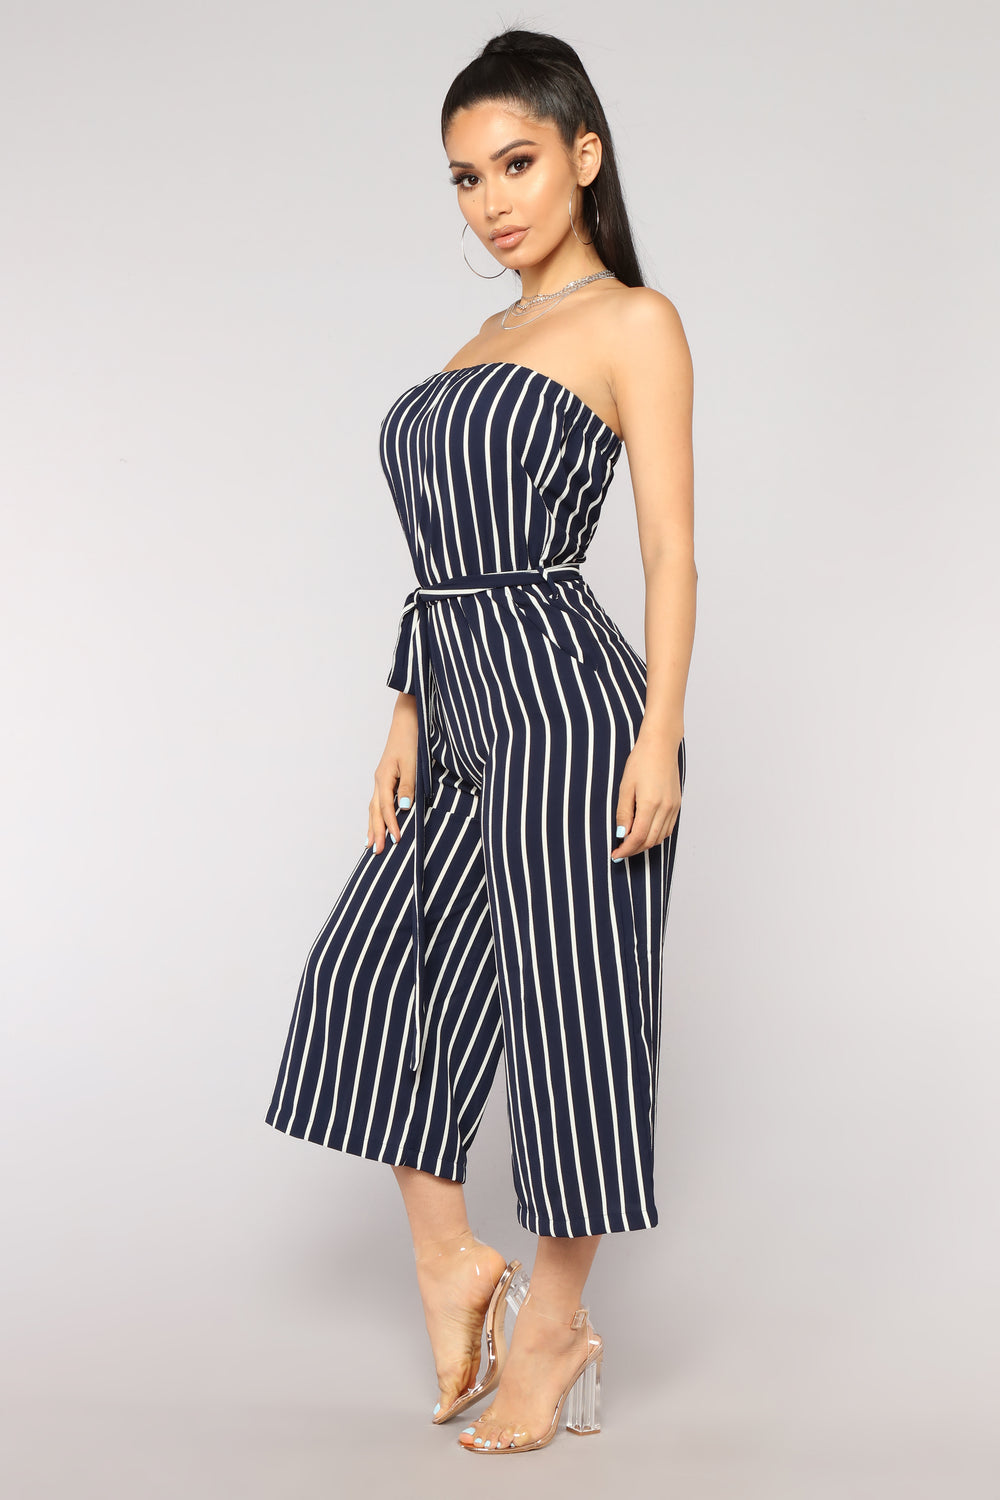 Across The Pond Striped Jumpsuit - Navy/White